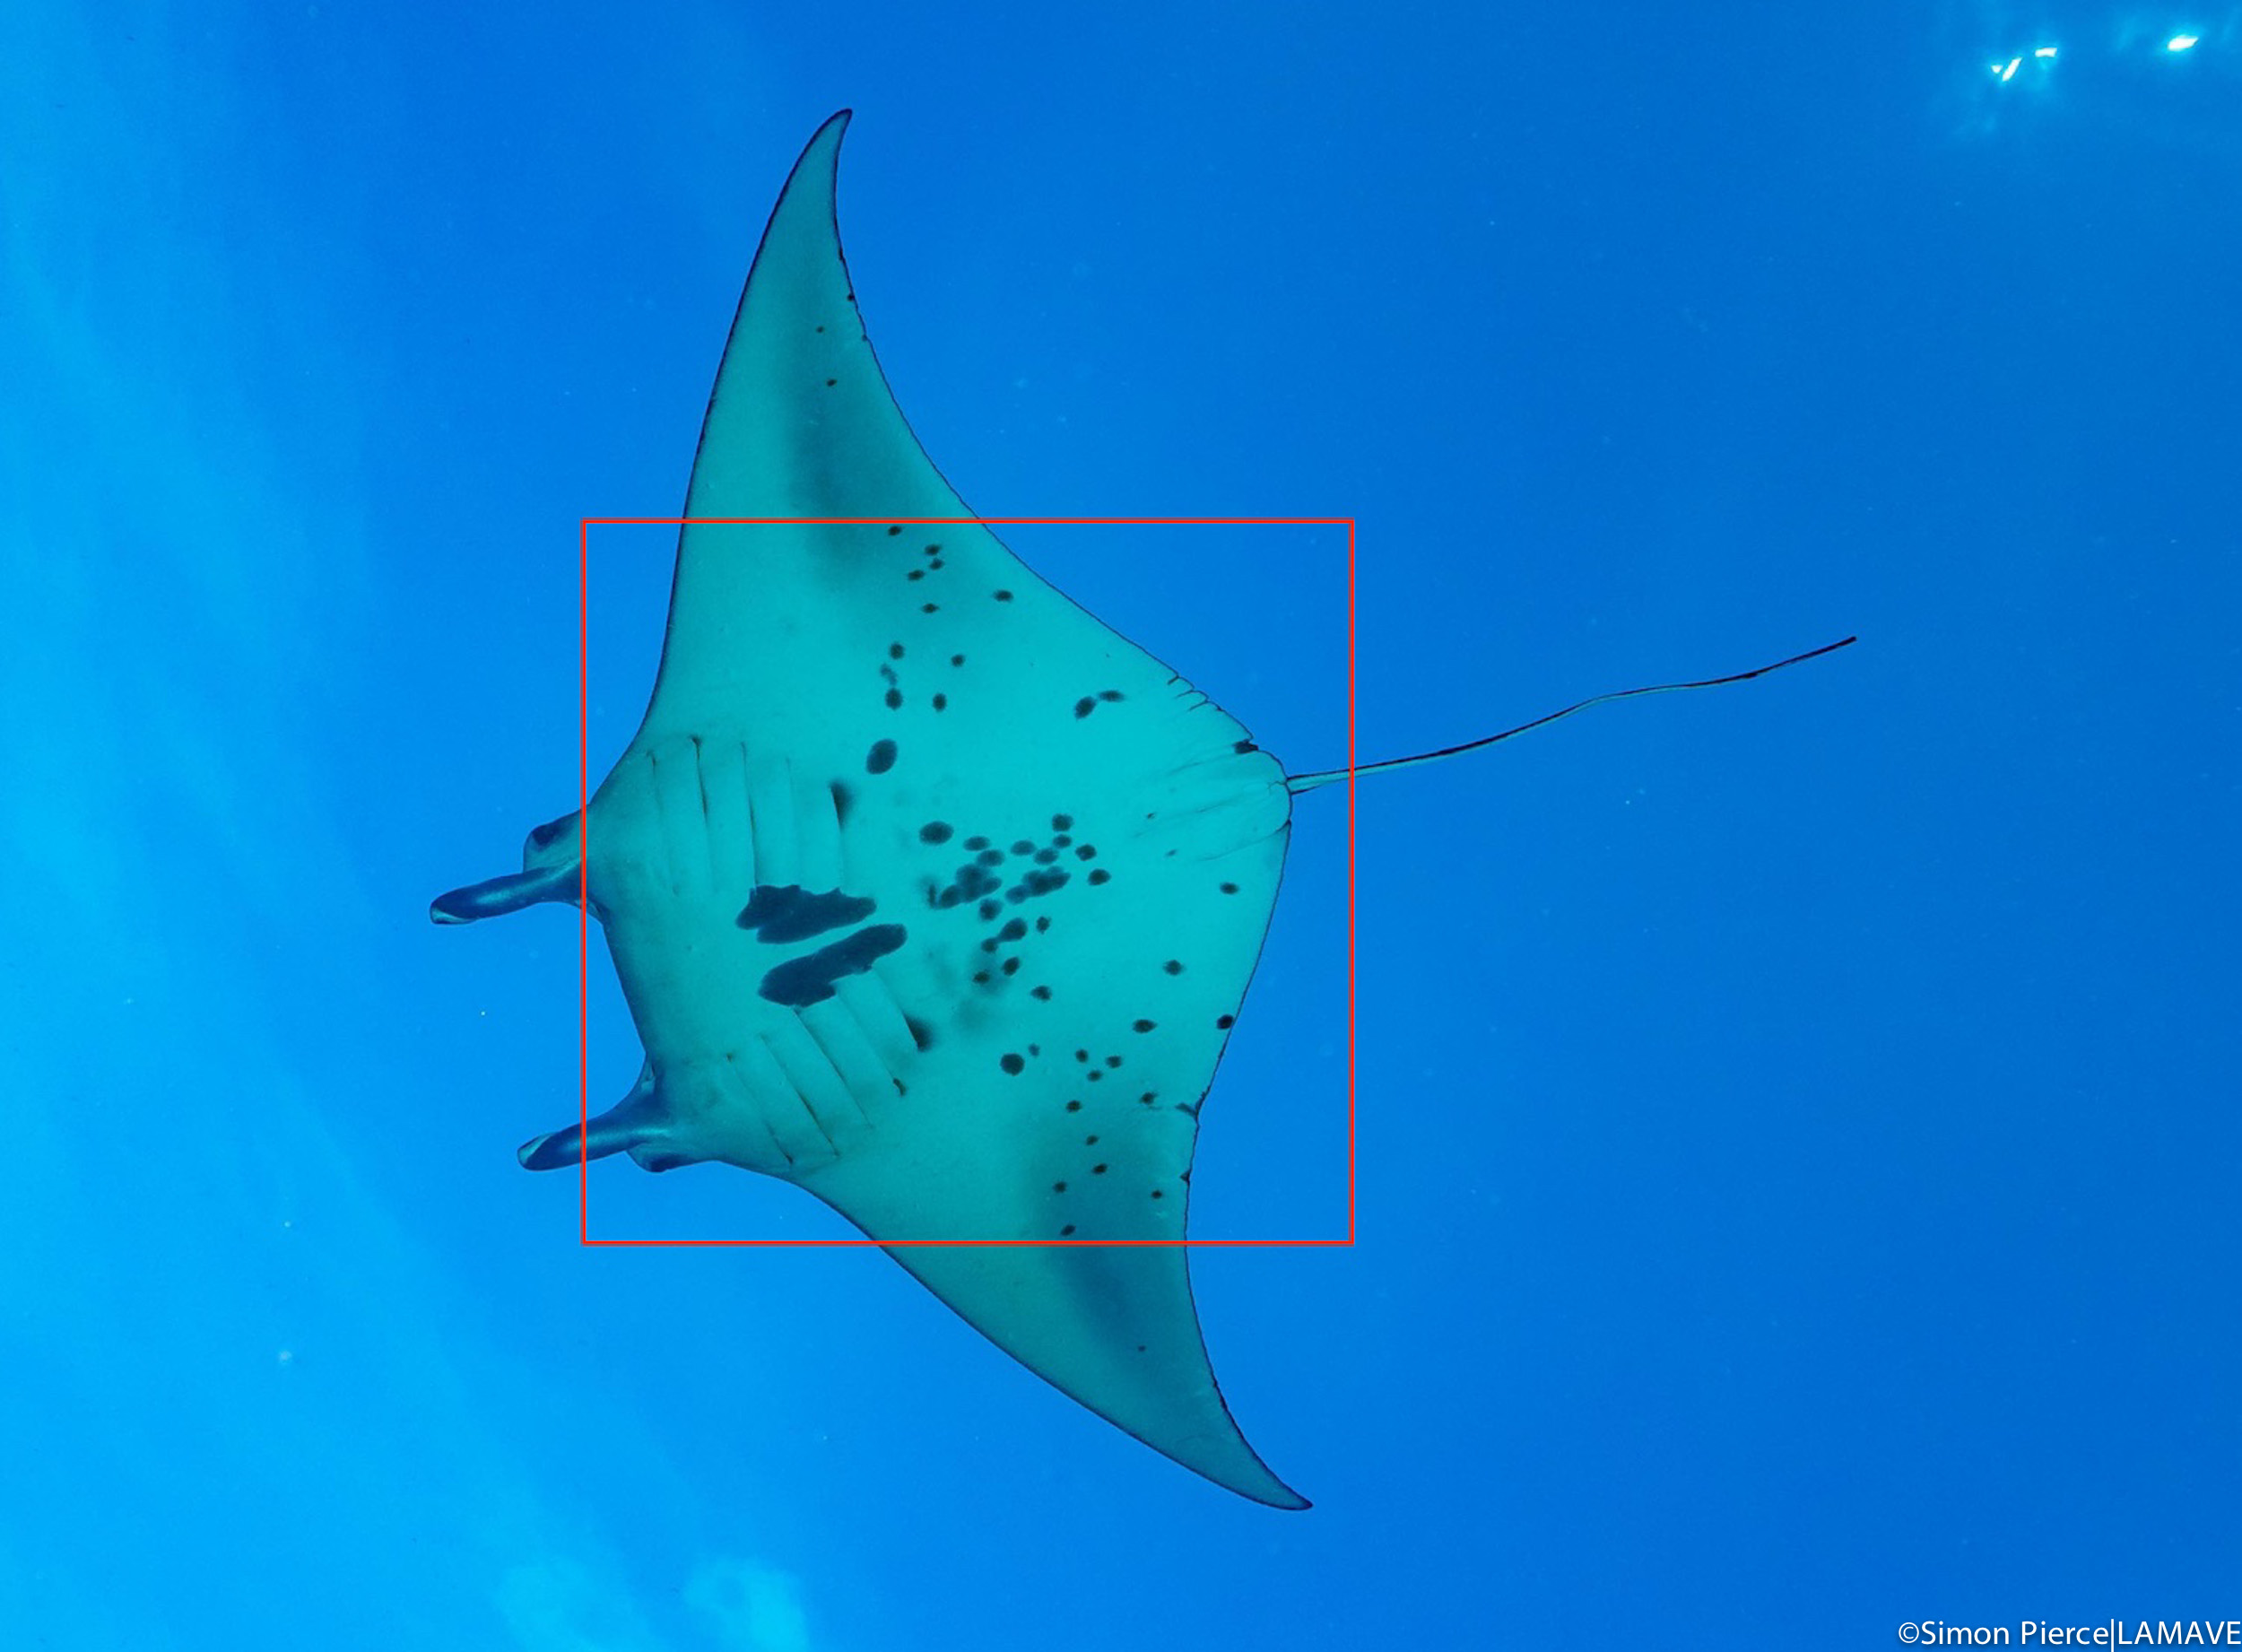 The spot pattern used to identify individual manta rays